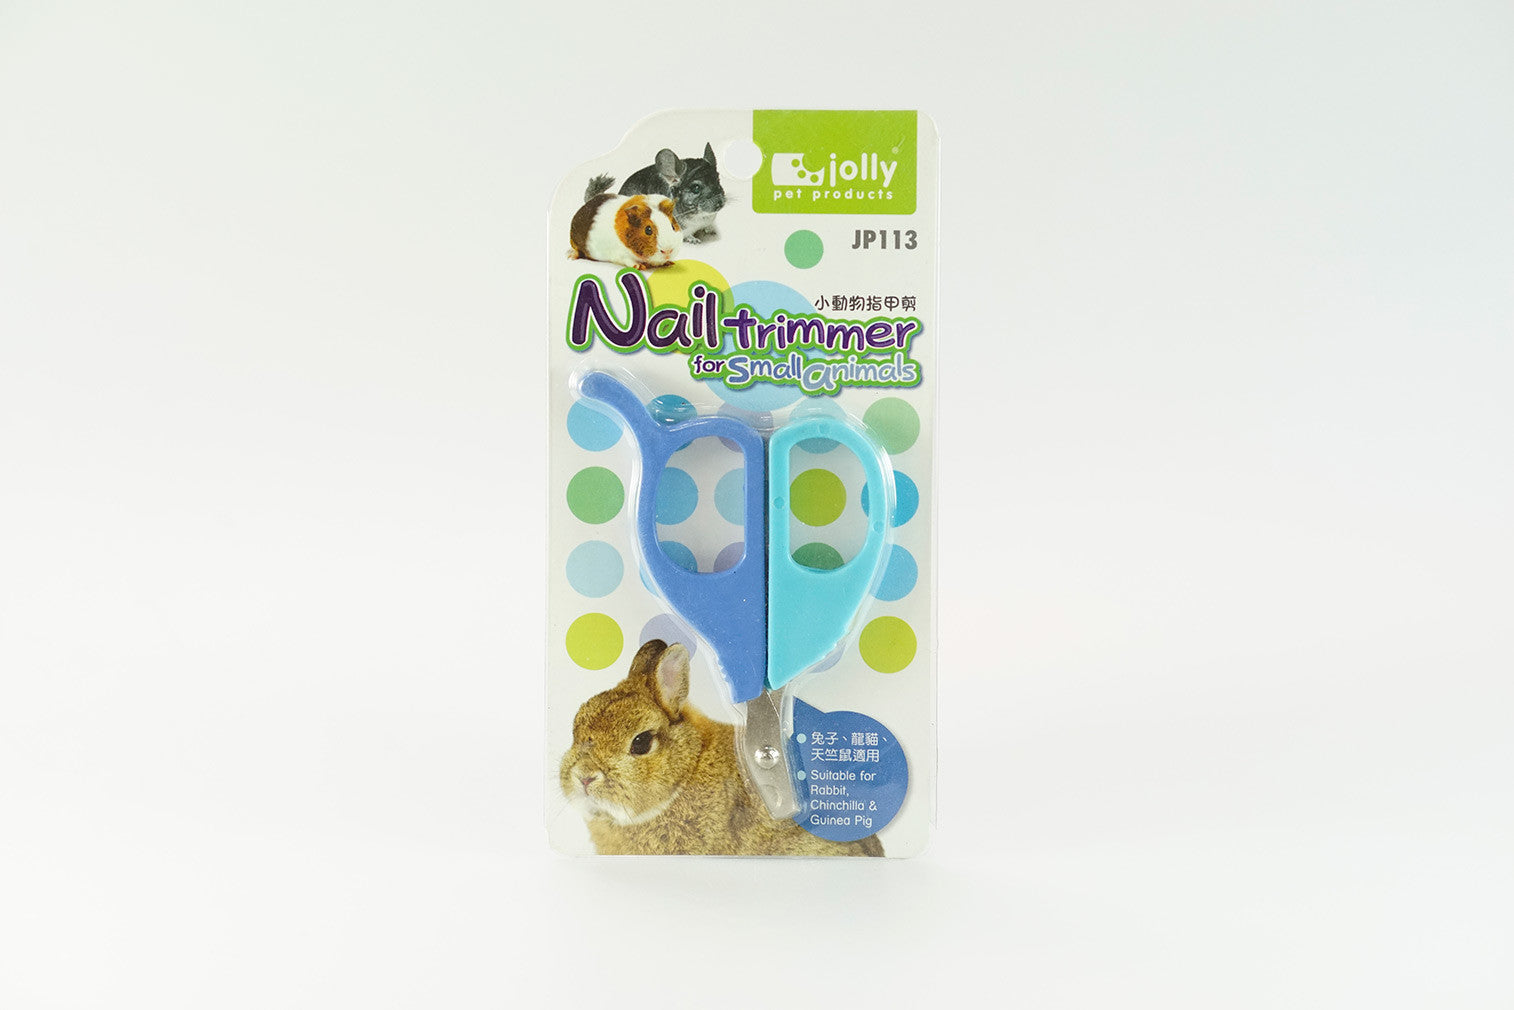 Jolly JP113 Nail Trimmer for Small Animals